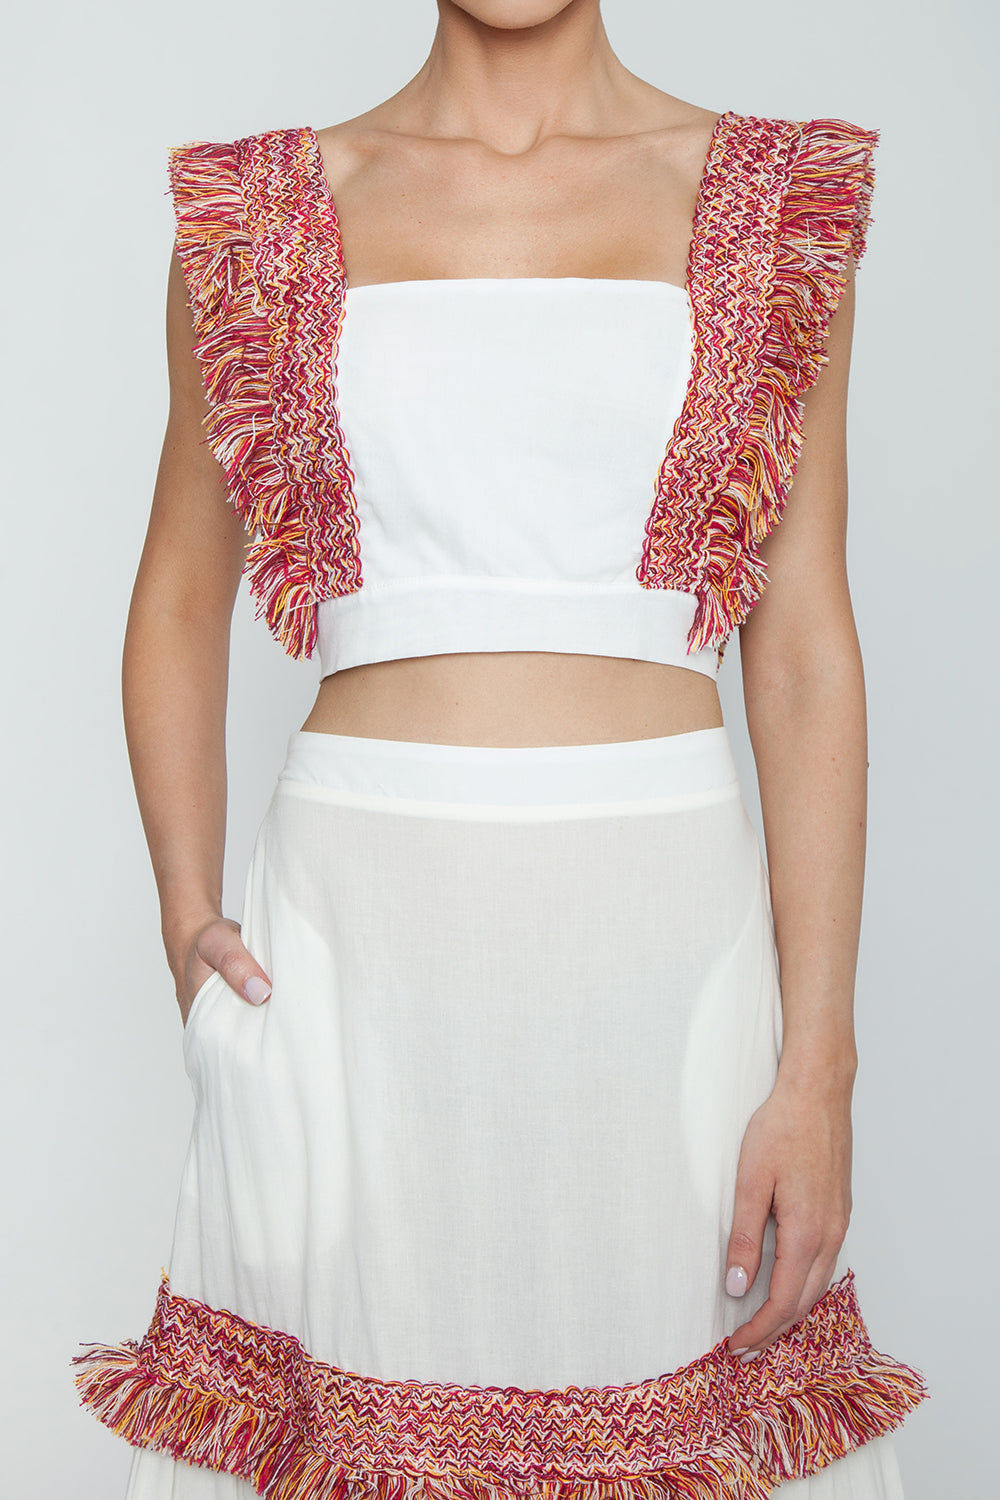 CLUBE BOSSA Gisborne Cropped Blouse - White & Jazzy Fringes Red Top | White & Jazzy Fringes Red| Clube Bossa Gisborne Cropped Blouse - White & Jazzy Fringes Red Features:  Square neckline Fringe shoulders Cropped top Sleeveless design Detail View